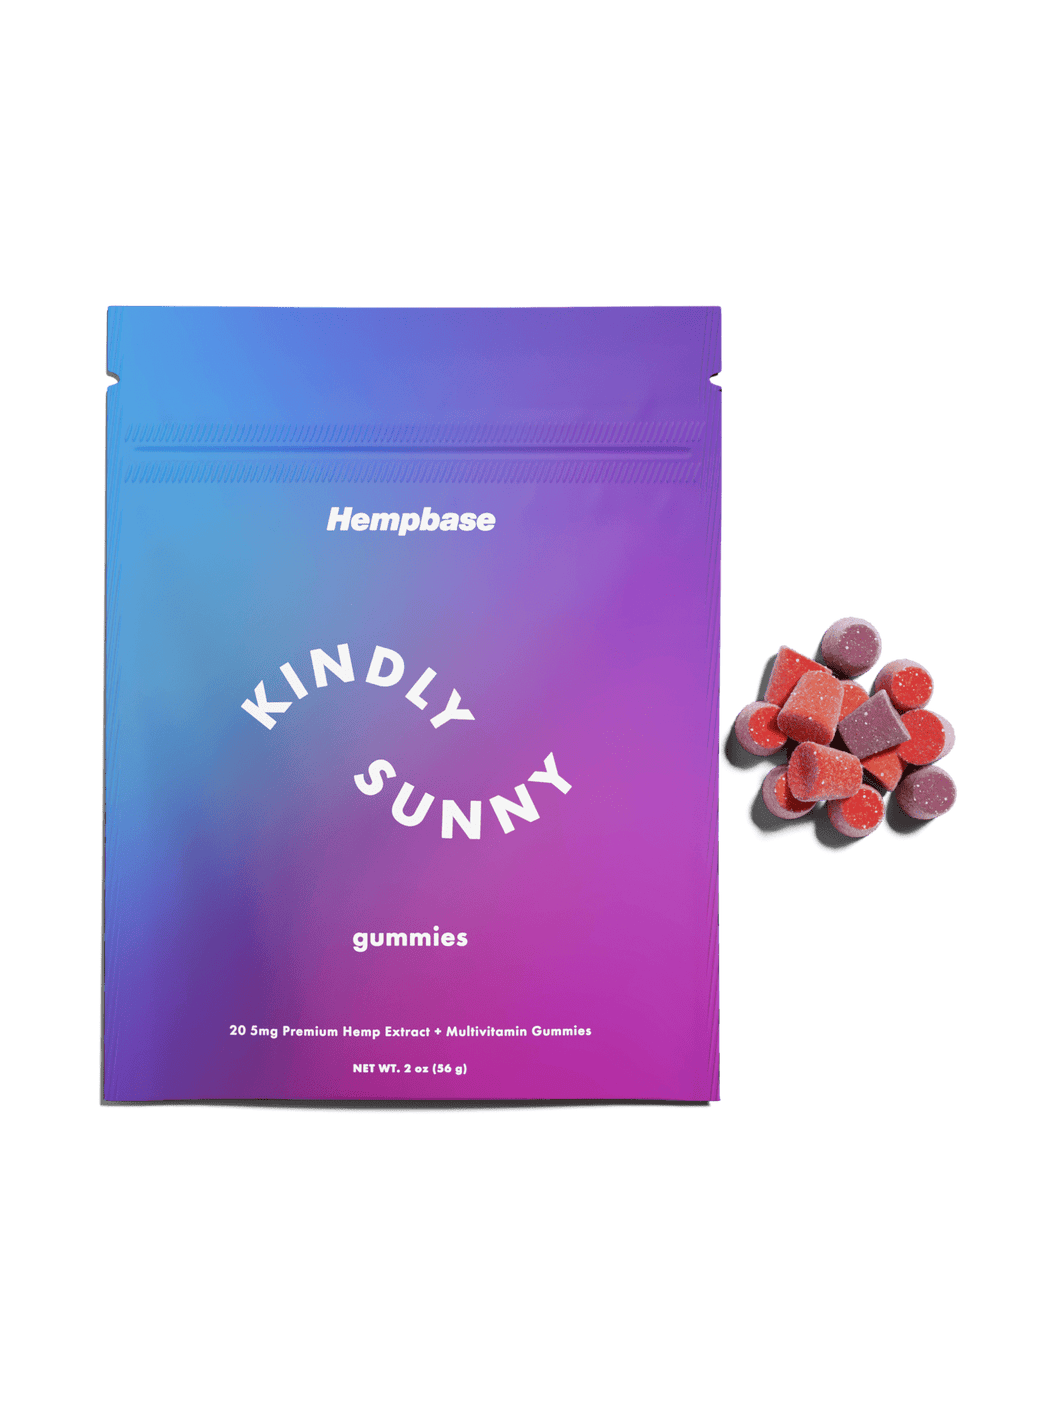 Hempbase - CBD Vegan Gummies - Best CBD Hemp gummies for pain